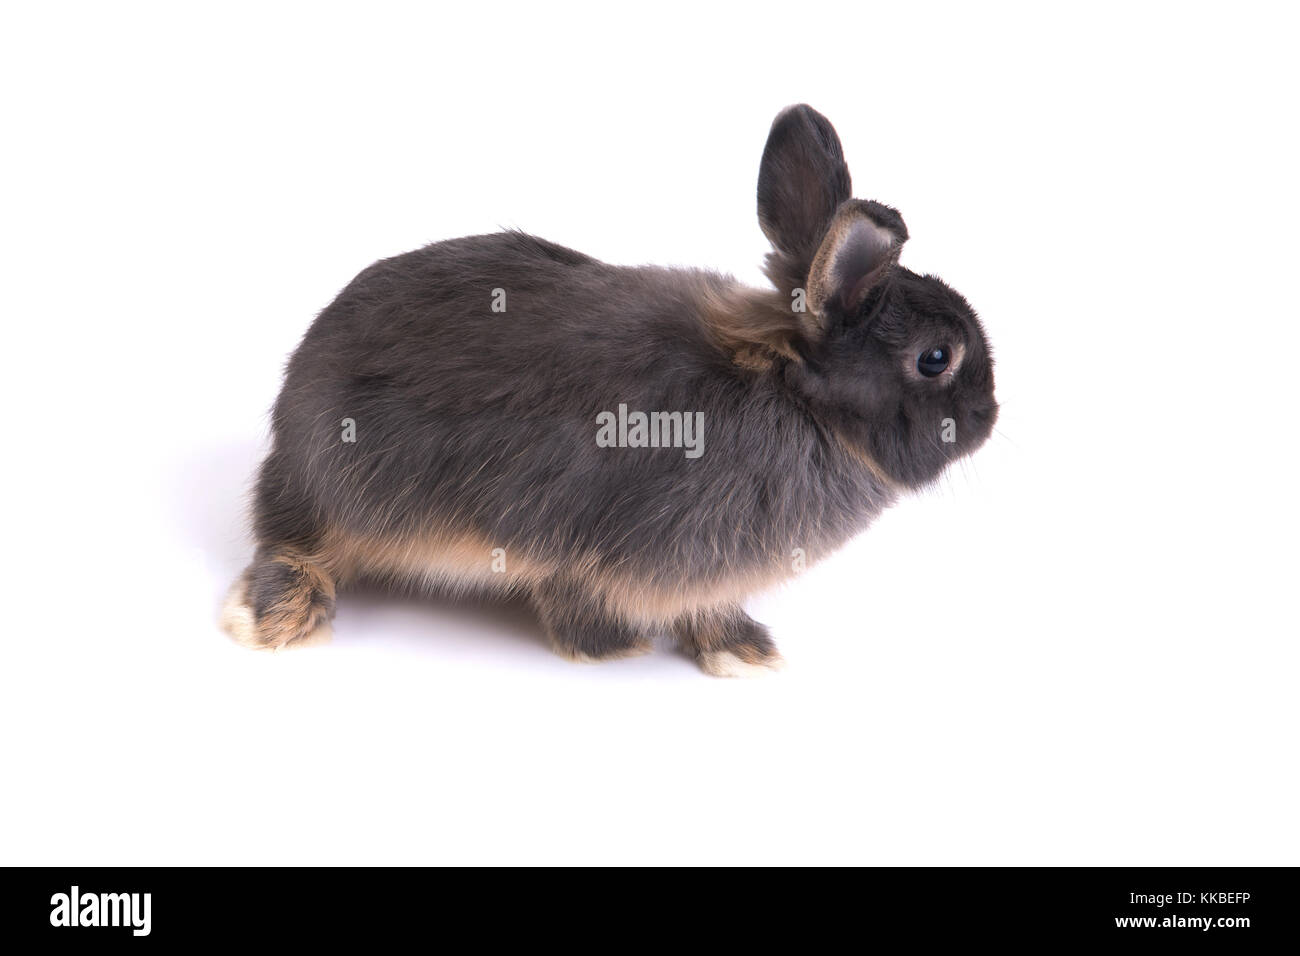 Side view of two tone color netherland dwarf rabbit on white background. - Stock Image